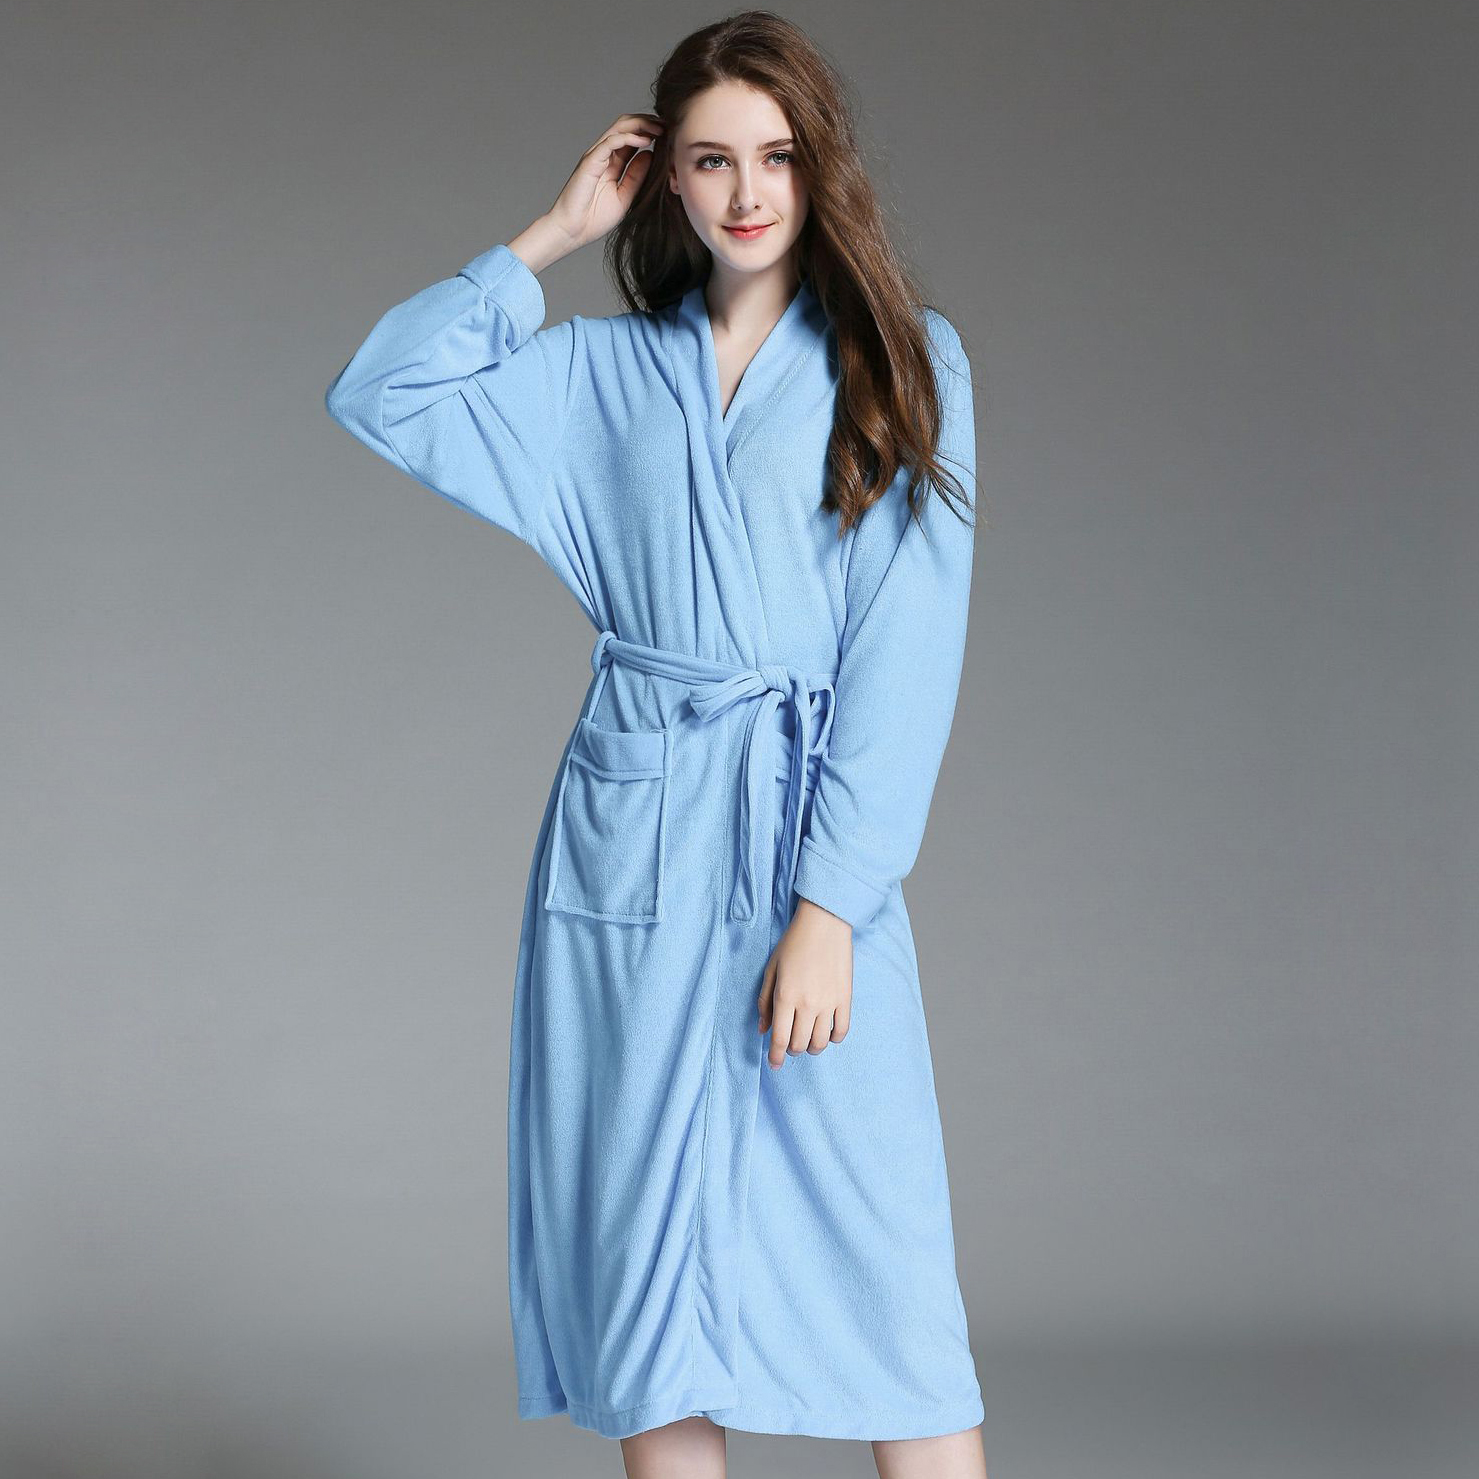 Plus Size Towel White Robe Women Dressing Gown Quality Spa Bathrobes